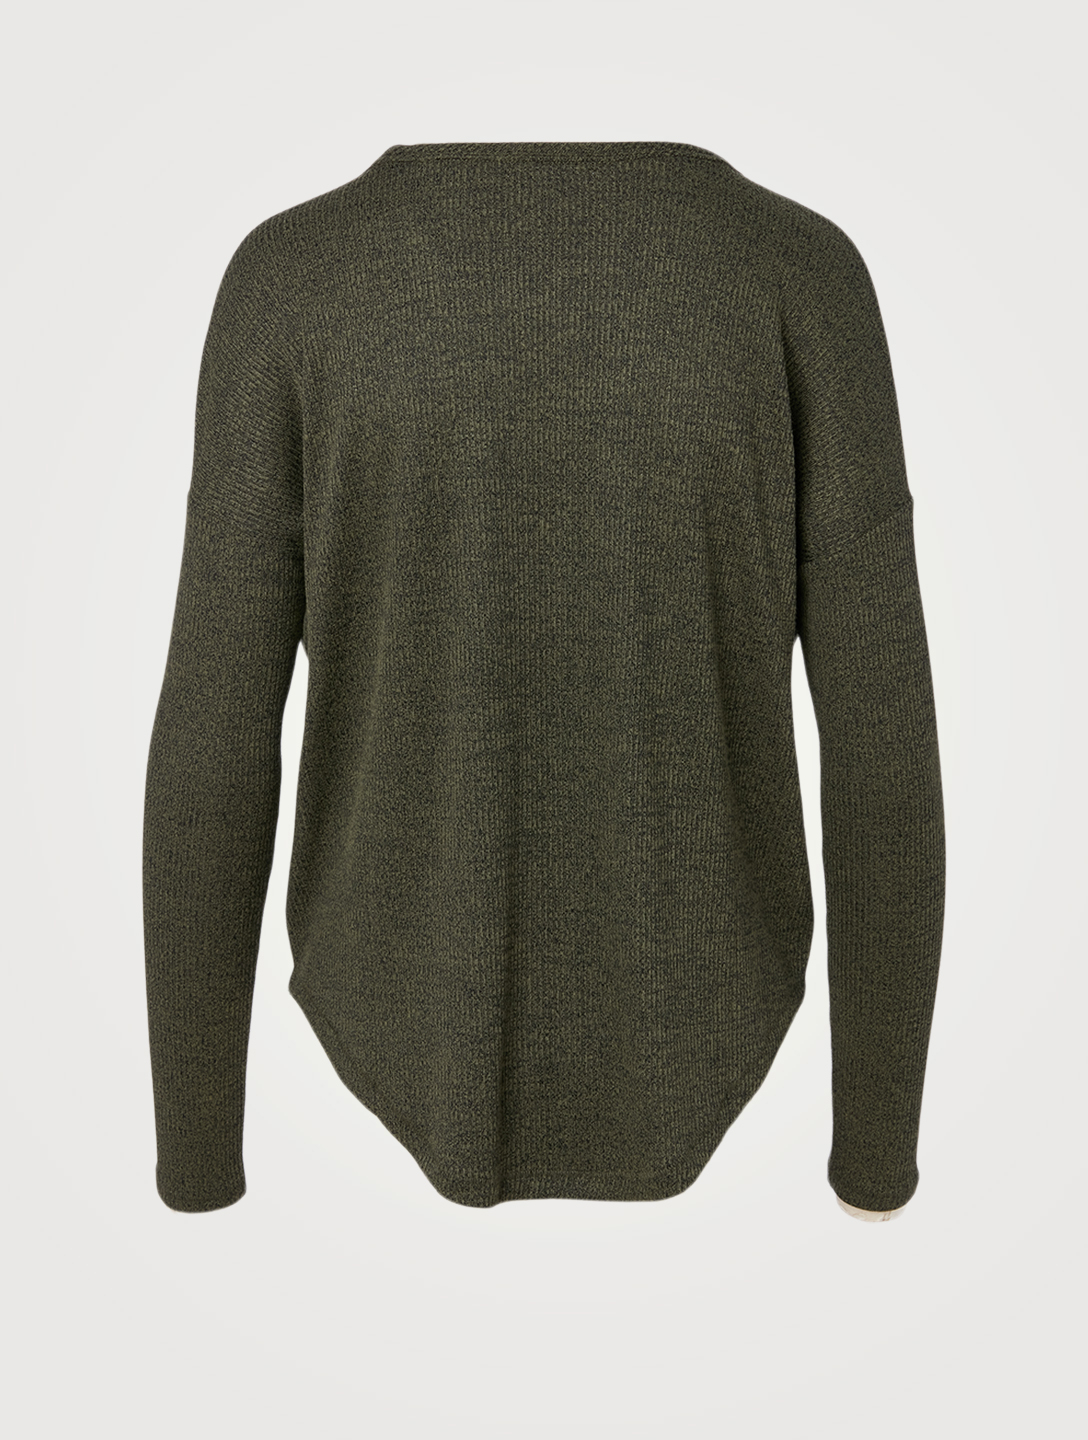 RAG & BONE Rib Knit Long-Sleeve Top Women's Green